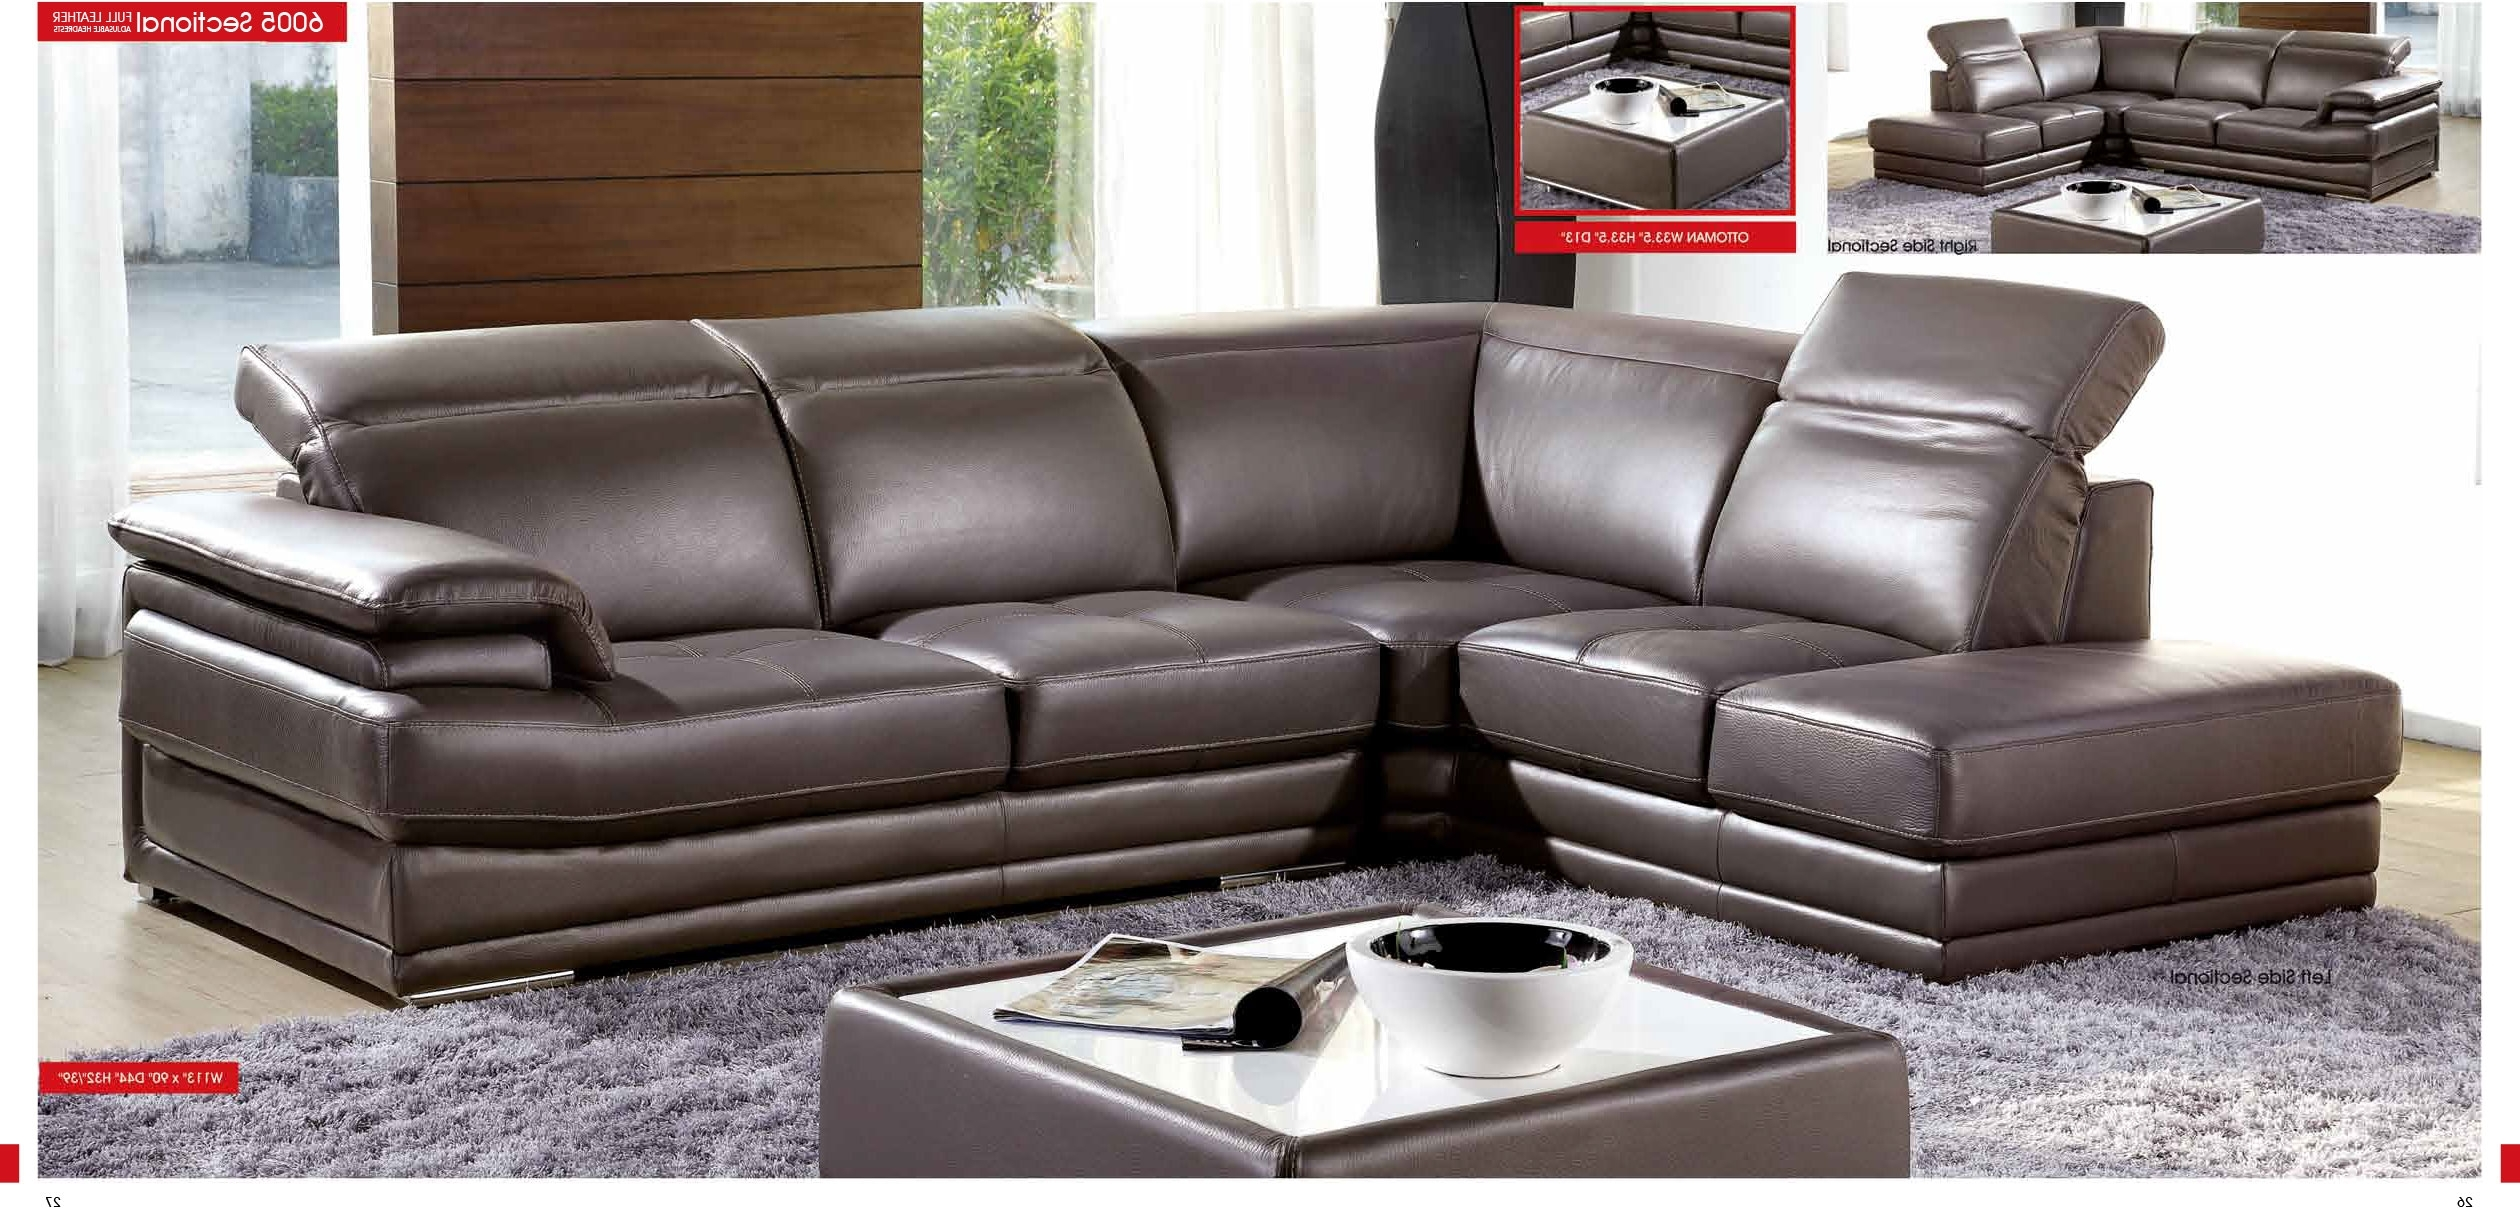 Leather Sectional Sofa Miami (View 12 of 15)